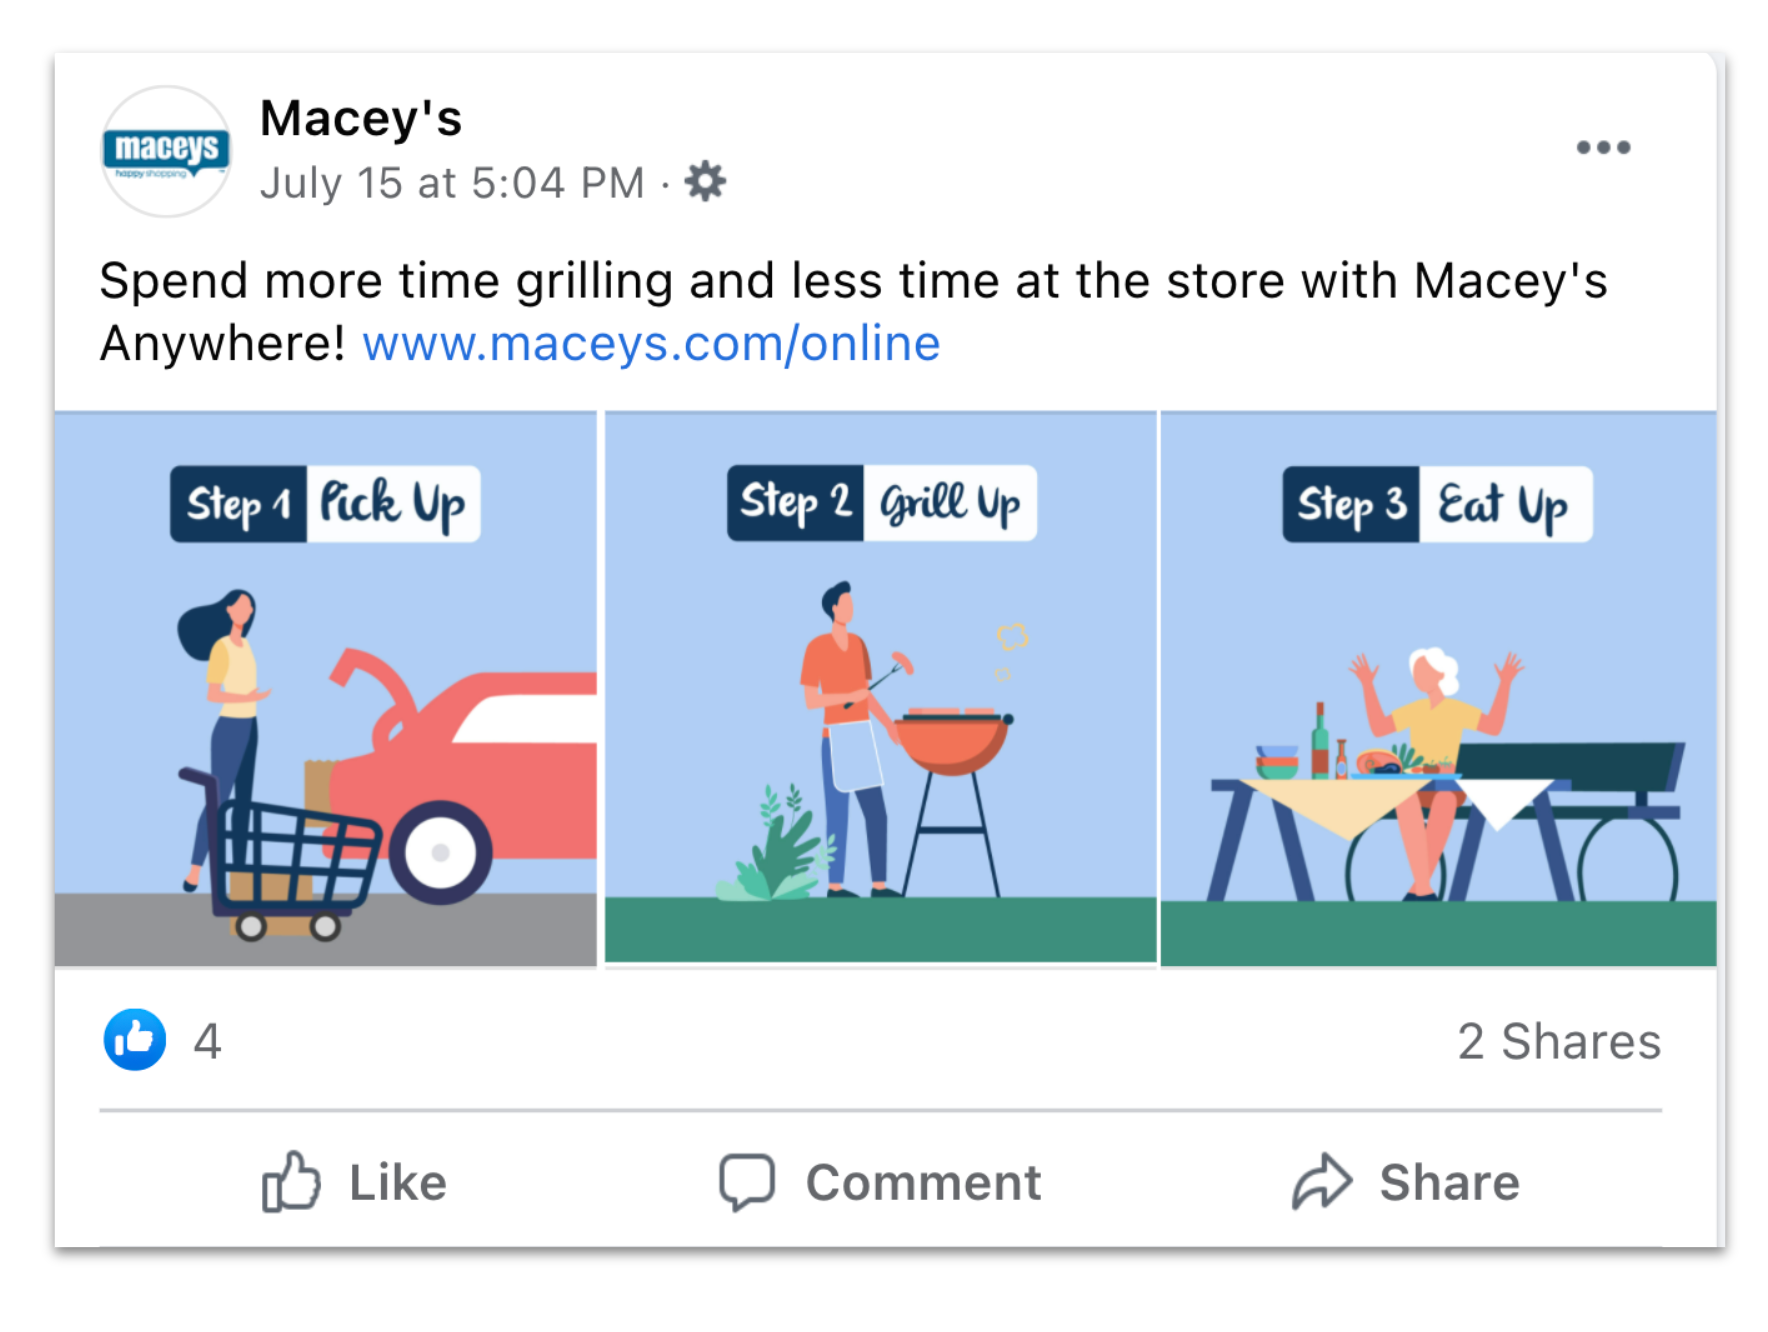 Image of Macey's Facebook post with three infographics depicting the three steps of online ordering: 1. Pick up 2. Grill up 3. Eat up